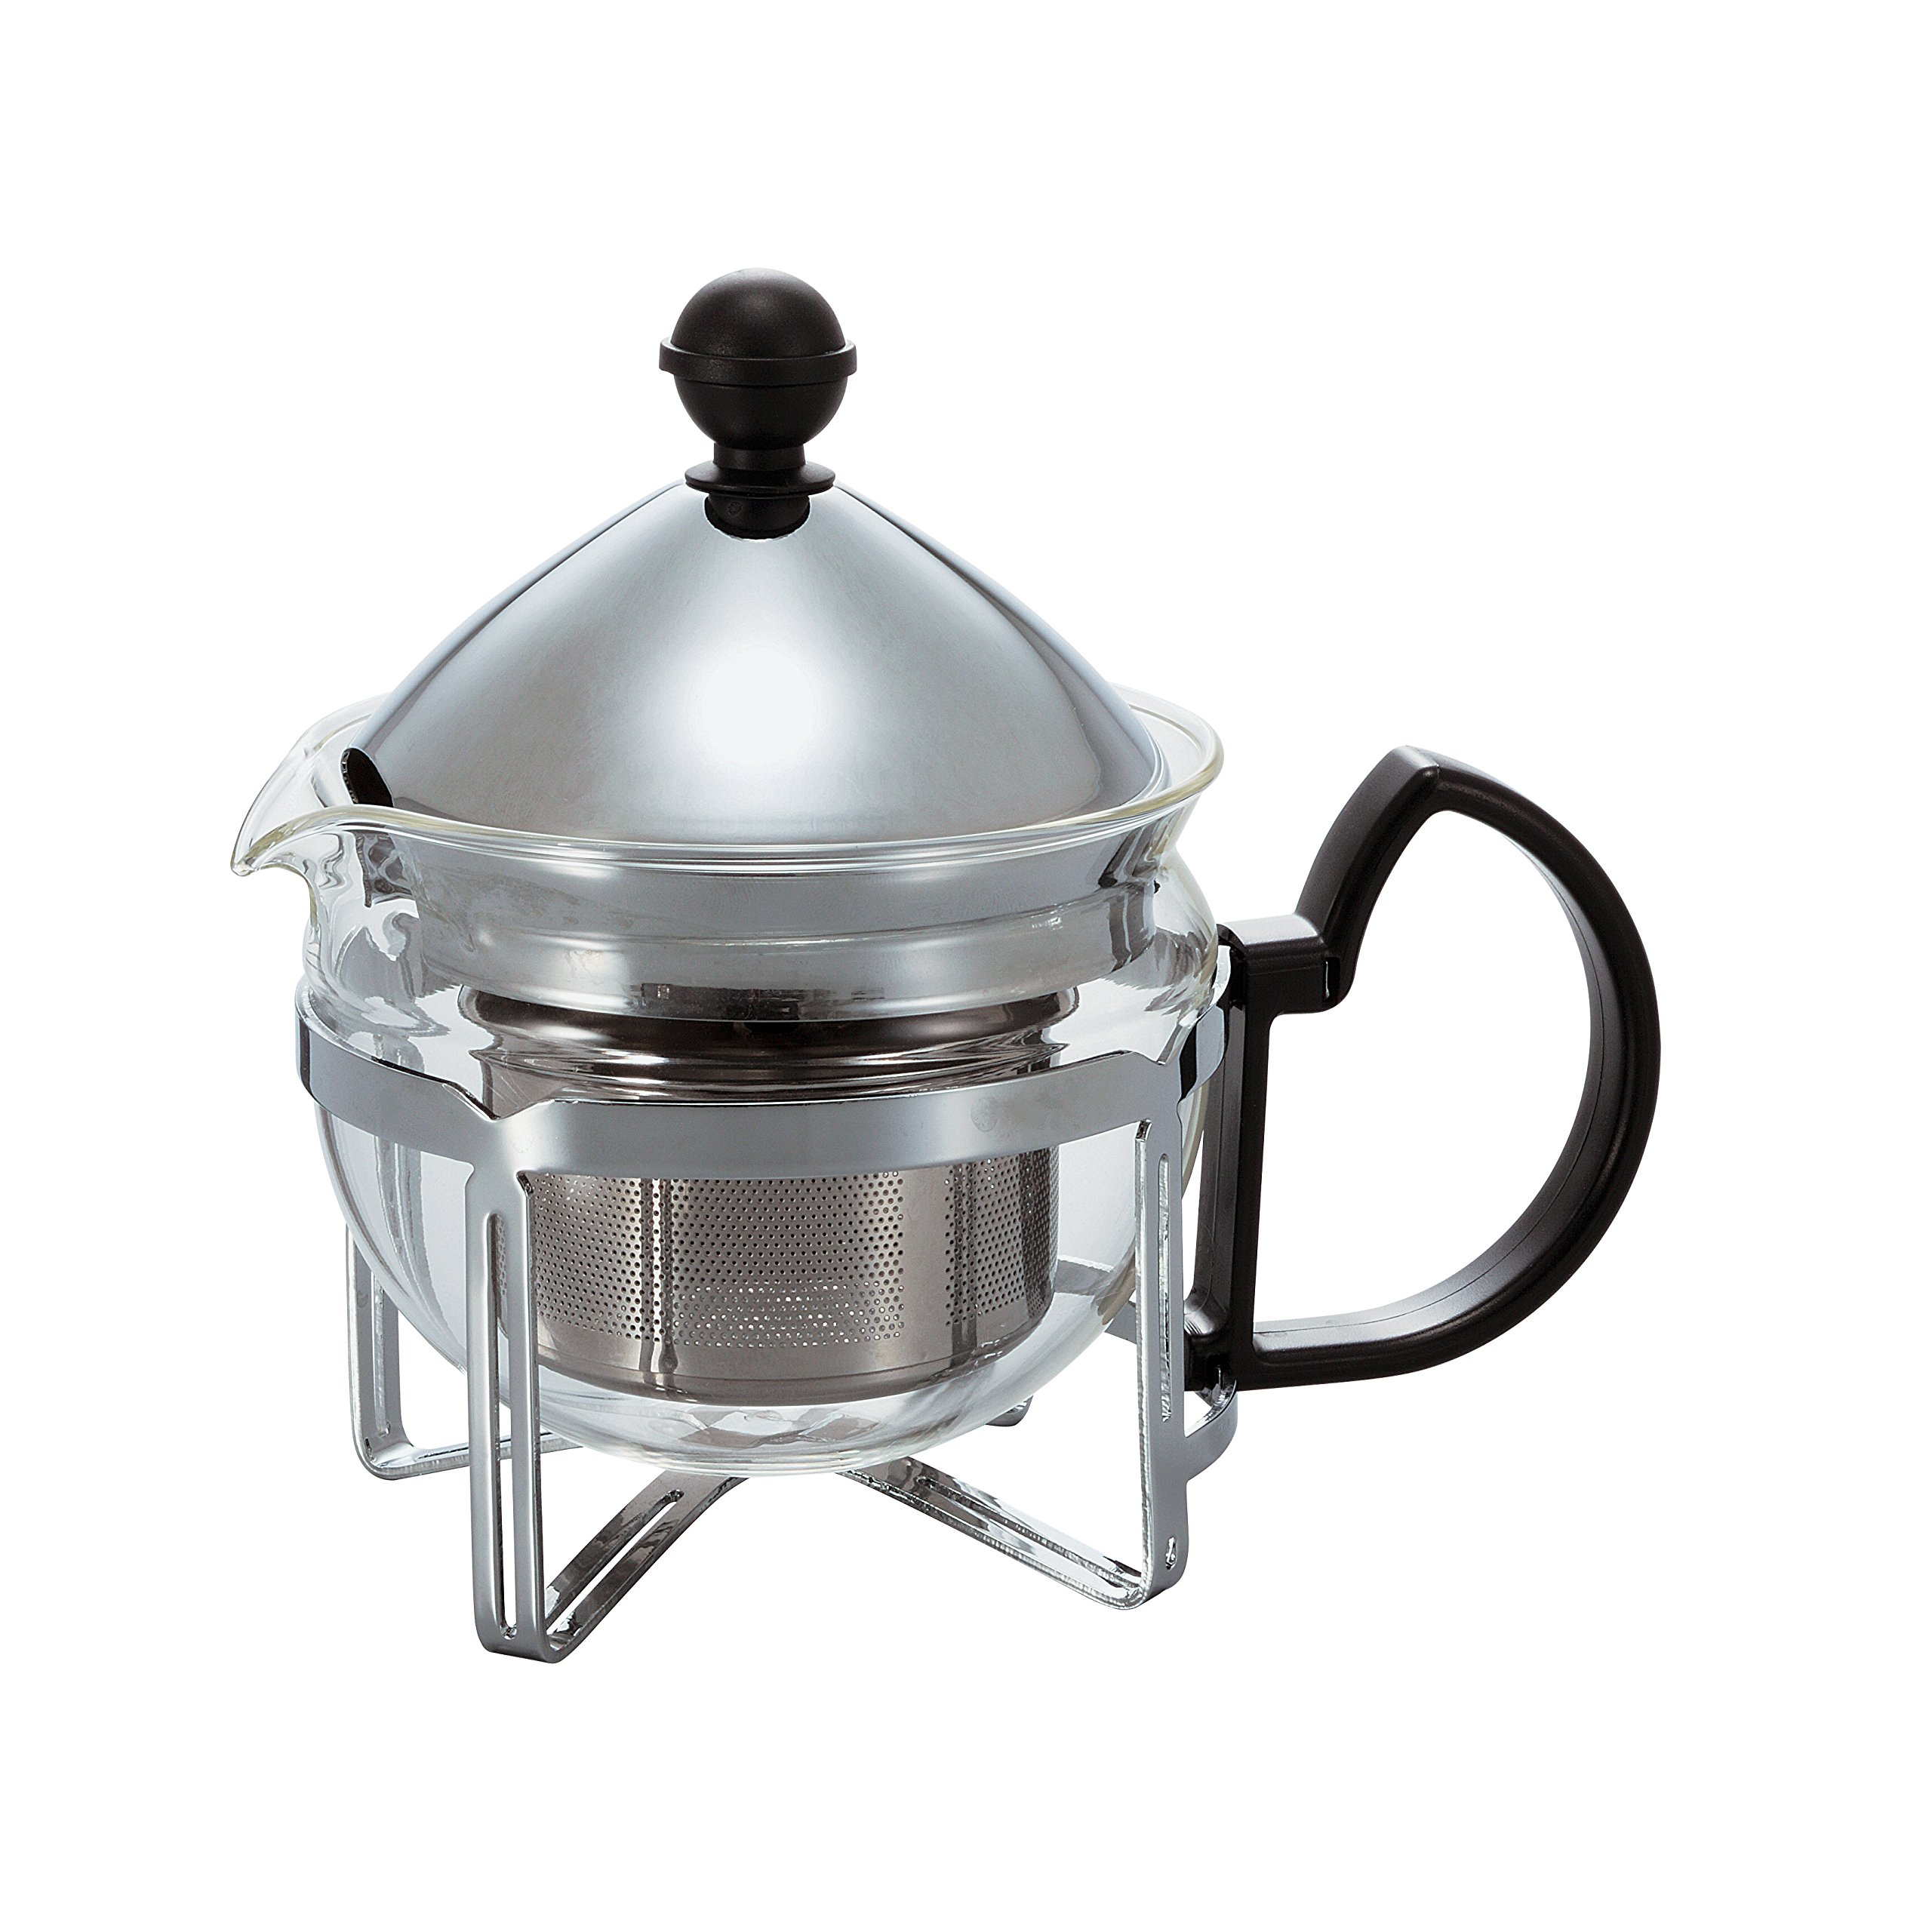 HARIO Tea Pot, 300ml, Not Applicable by Hario